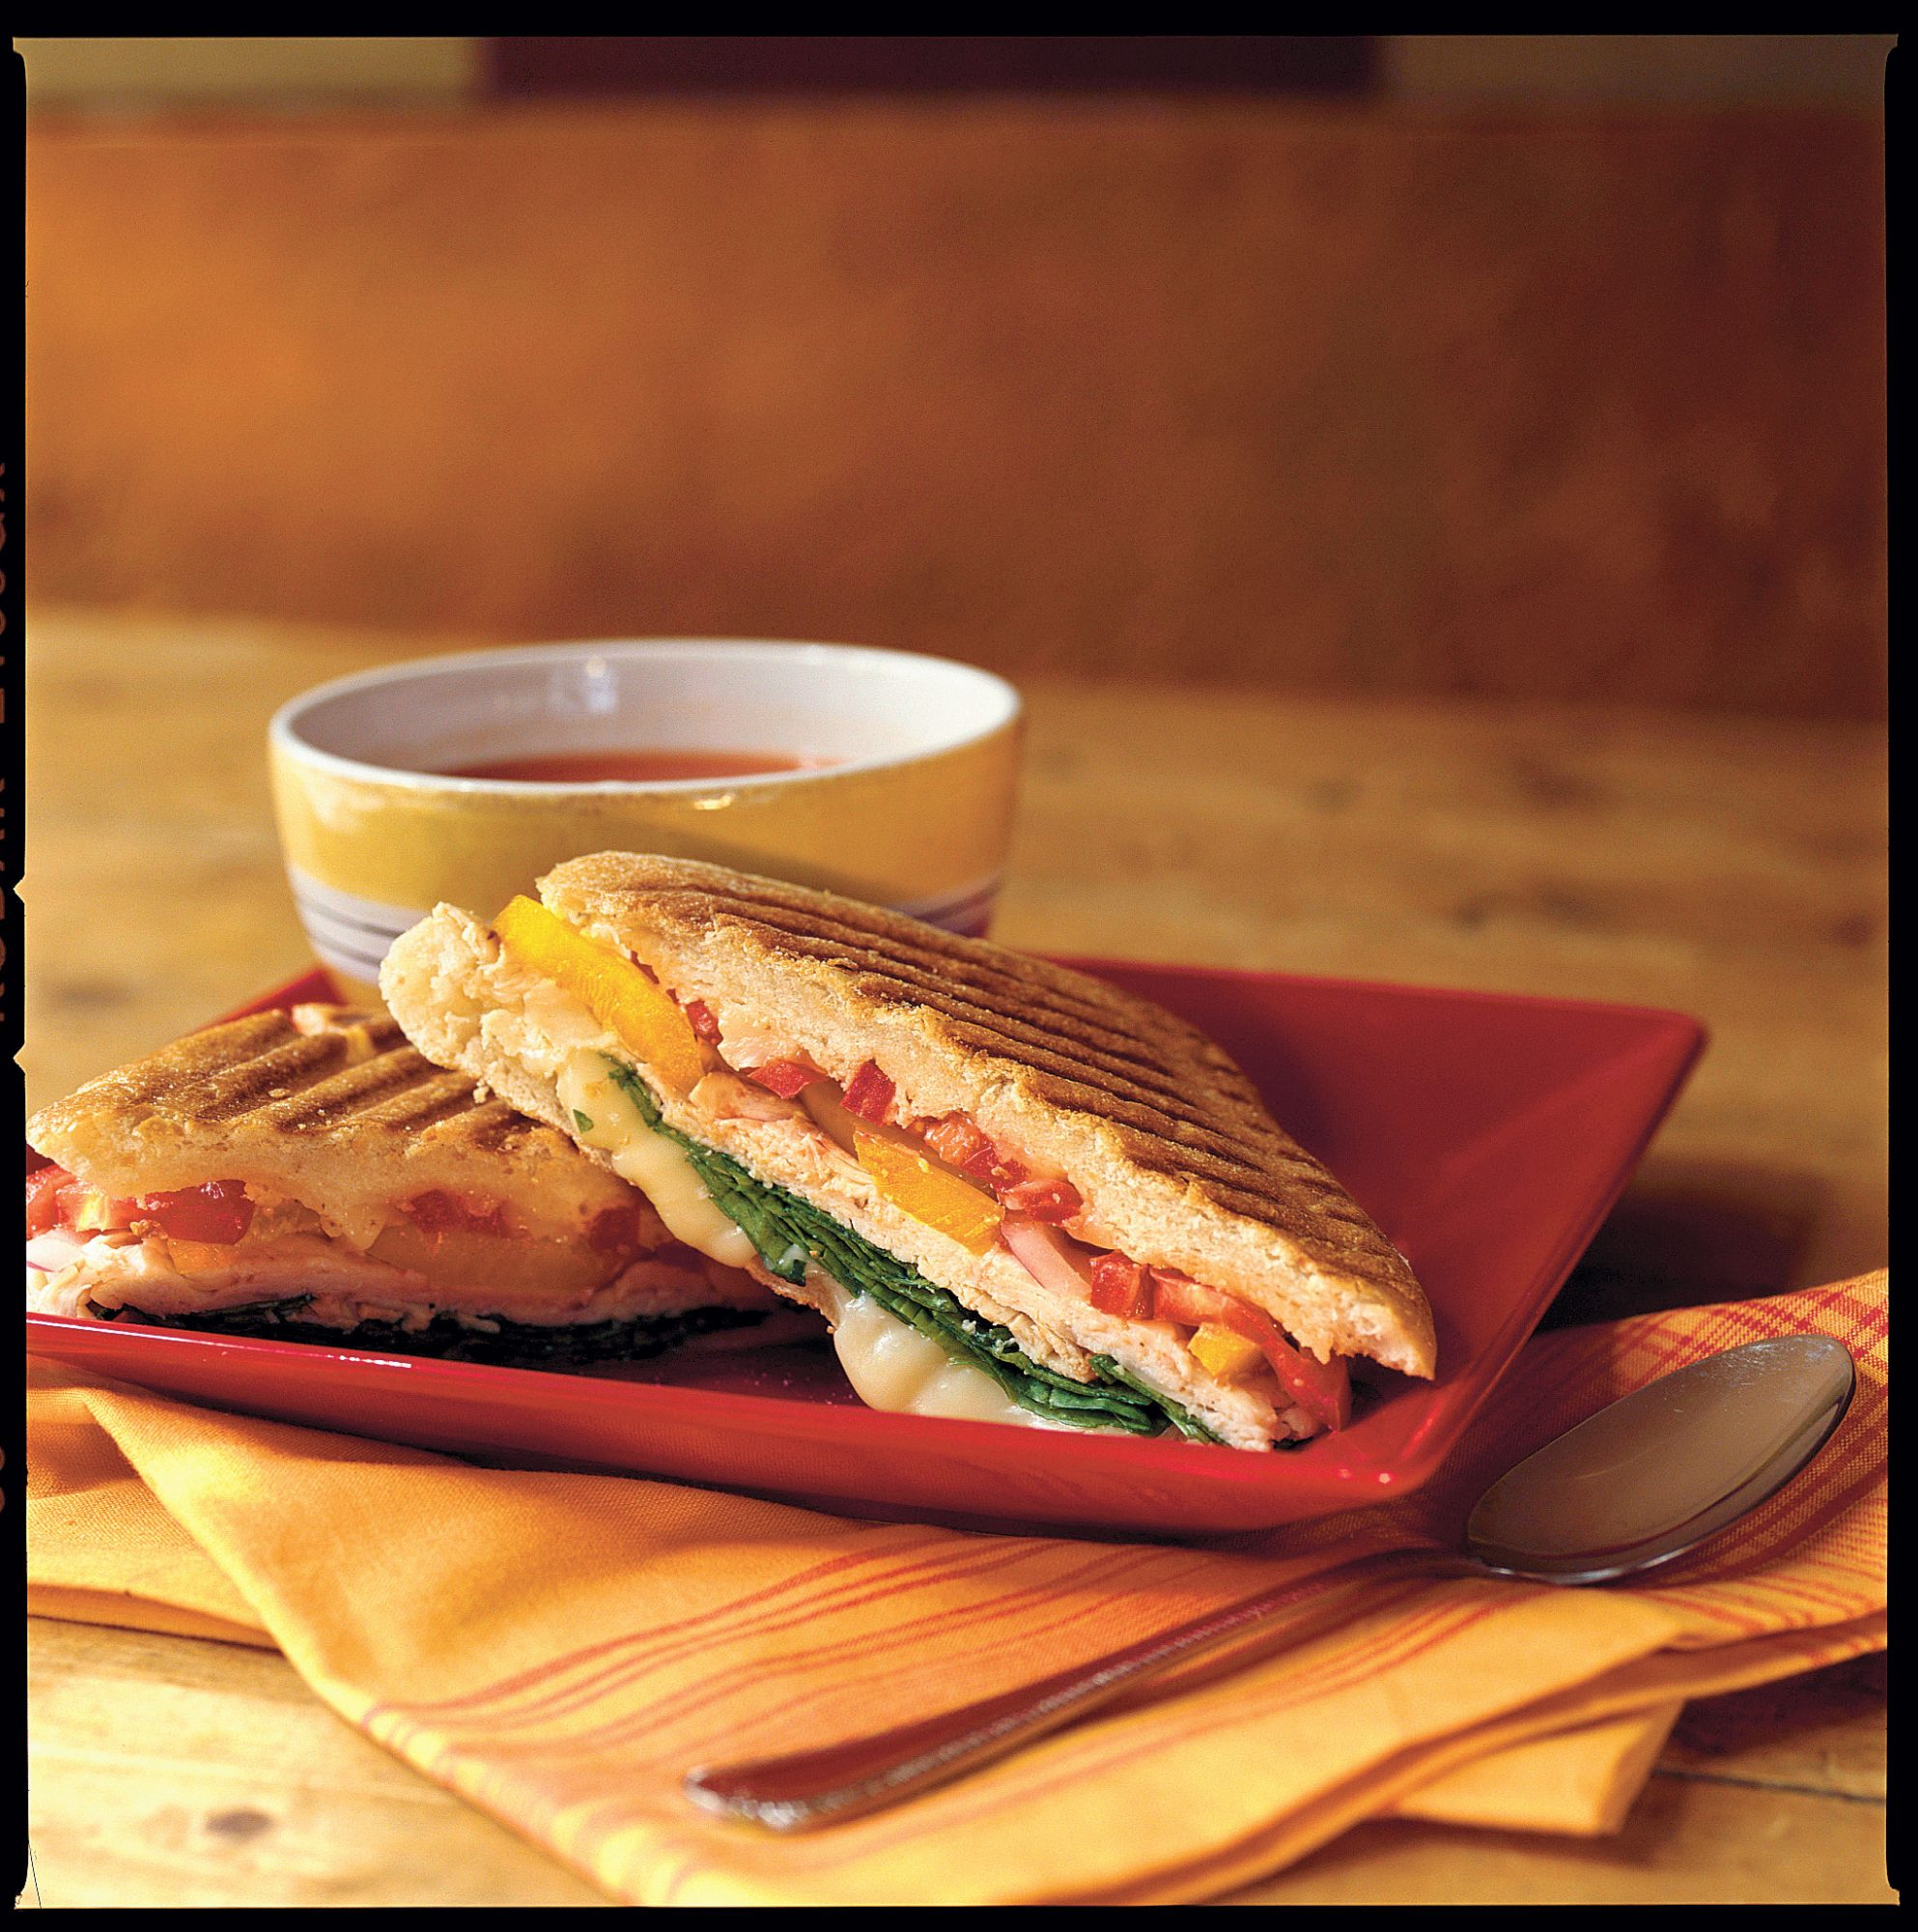 Easy Grilled Sandwiches  Southern Living. Kitchen Cabinets Different Colors. Kitchenaid Products. Handmade Kitchen Tiles Uk. Kitchen Remodel New Jersey. Kitchen Dining Family Room Design. Kitchenaid Electric Kettle Review. Kitchen Makeover Wallington. Kitchen Colors Small Area